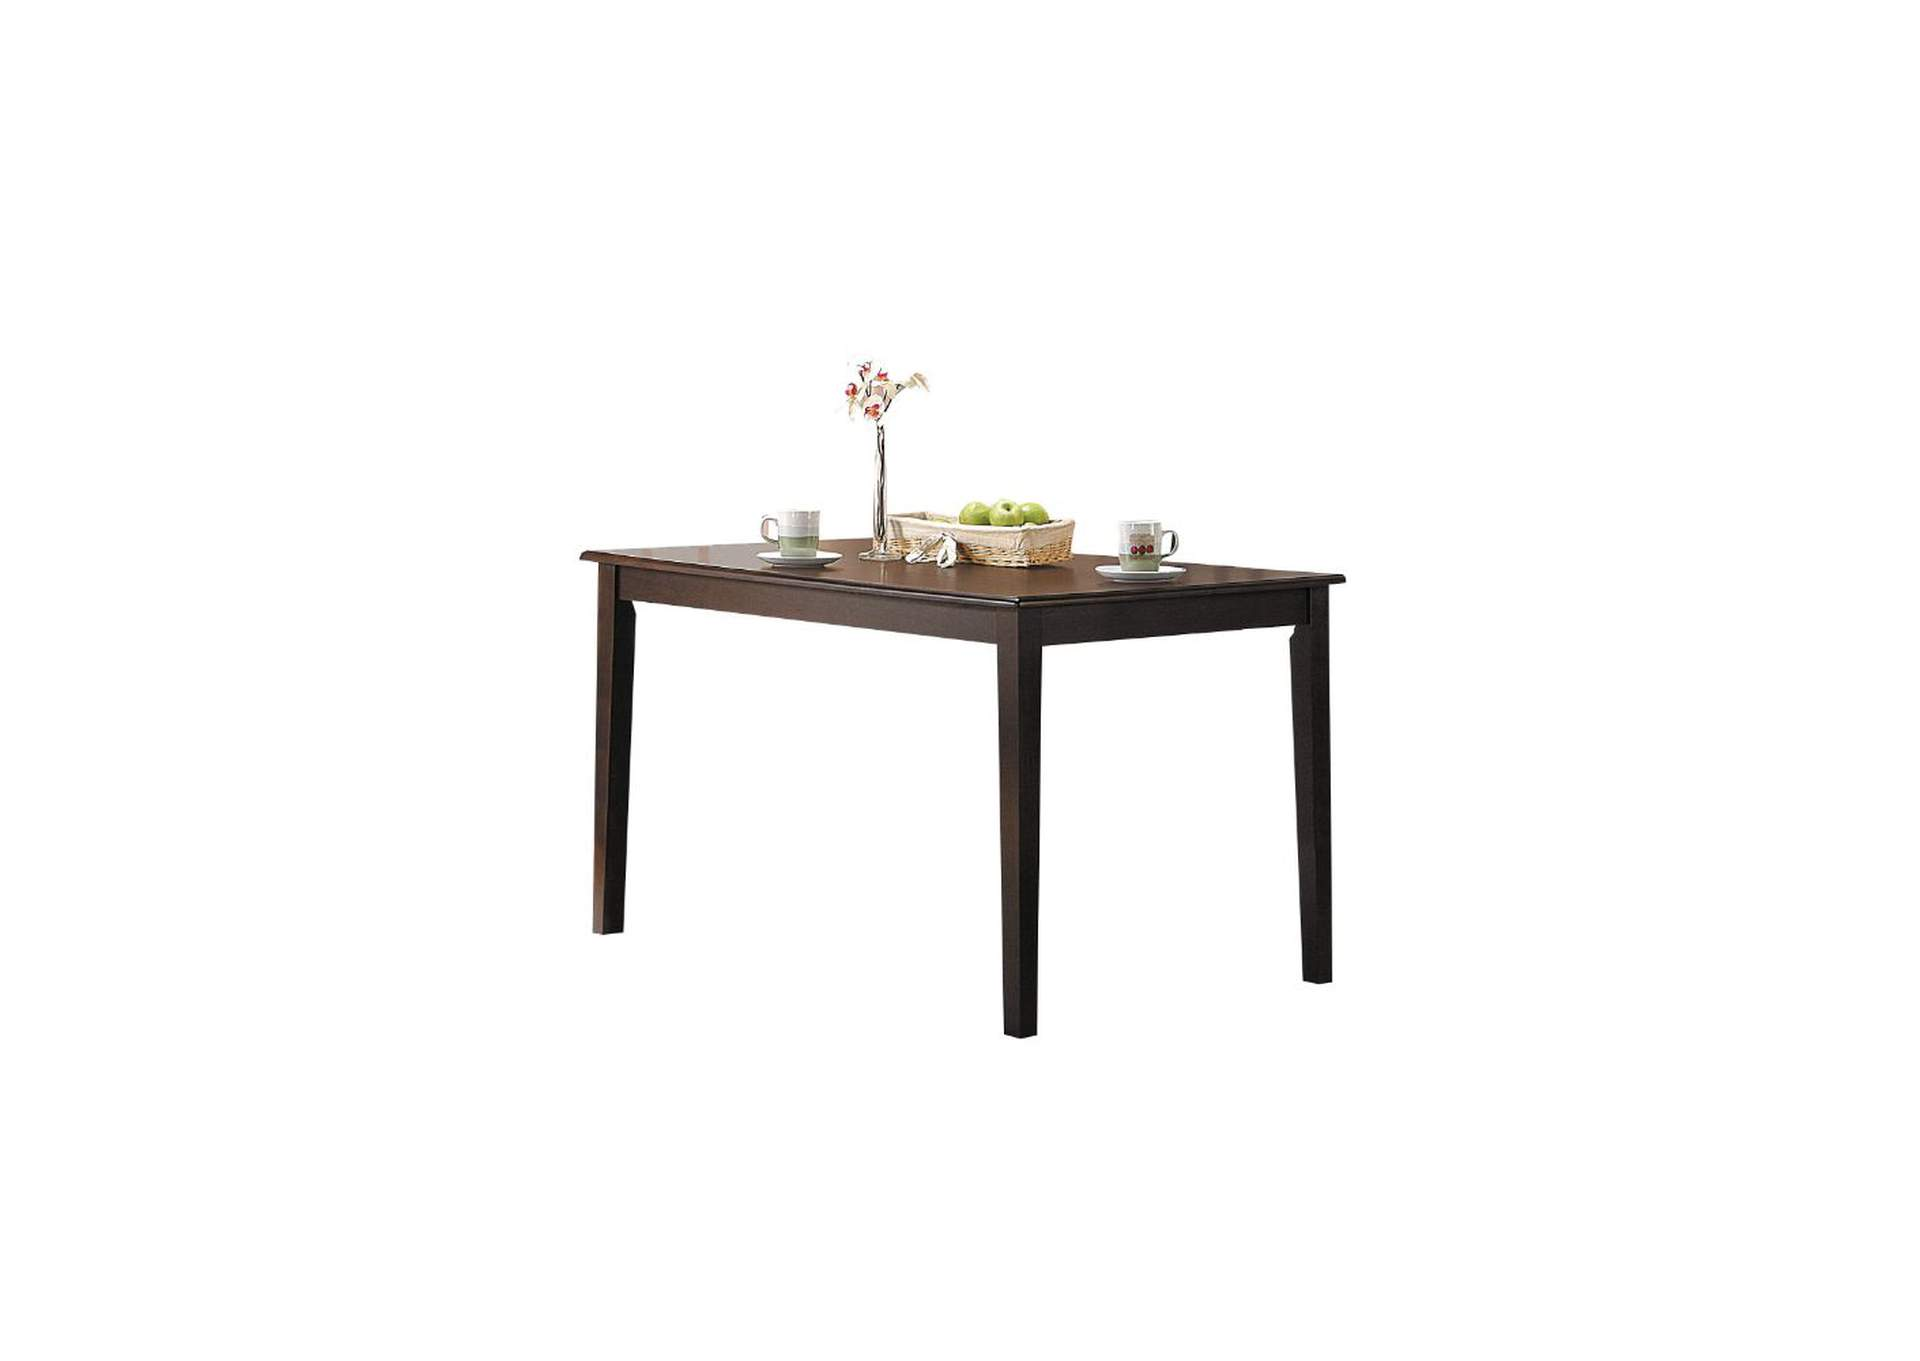 Cardiff Espresso Dining Table,Acme